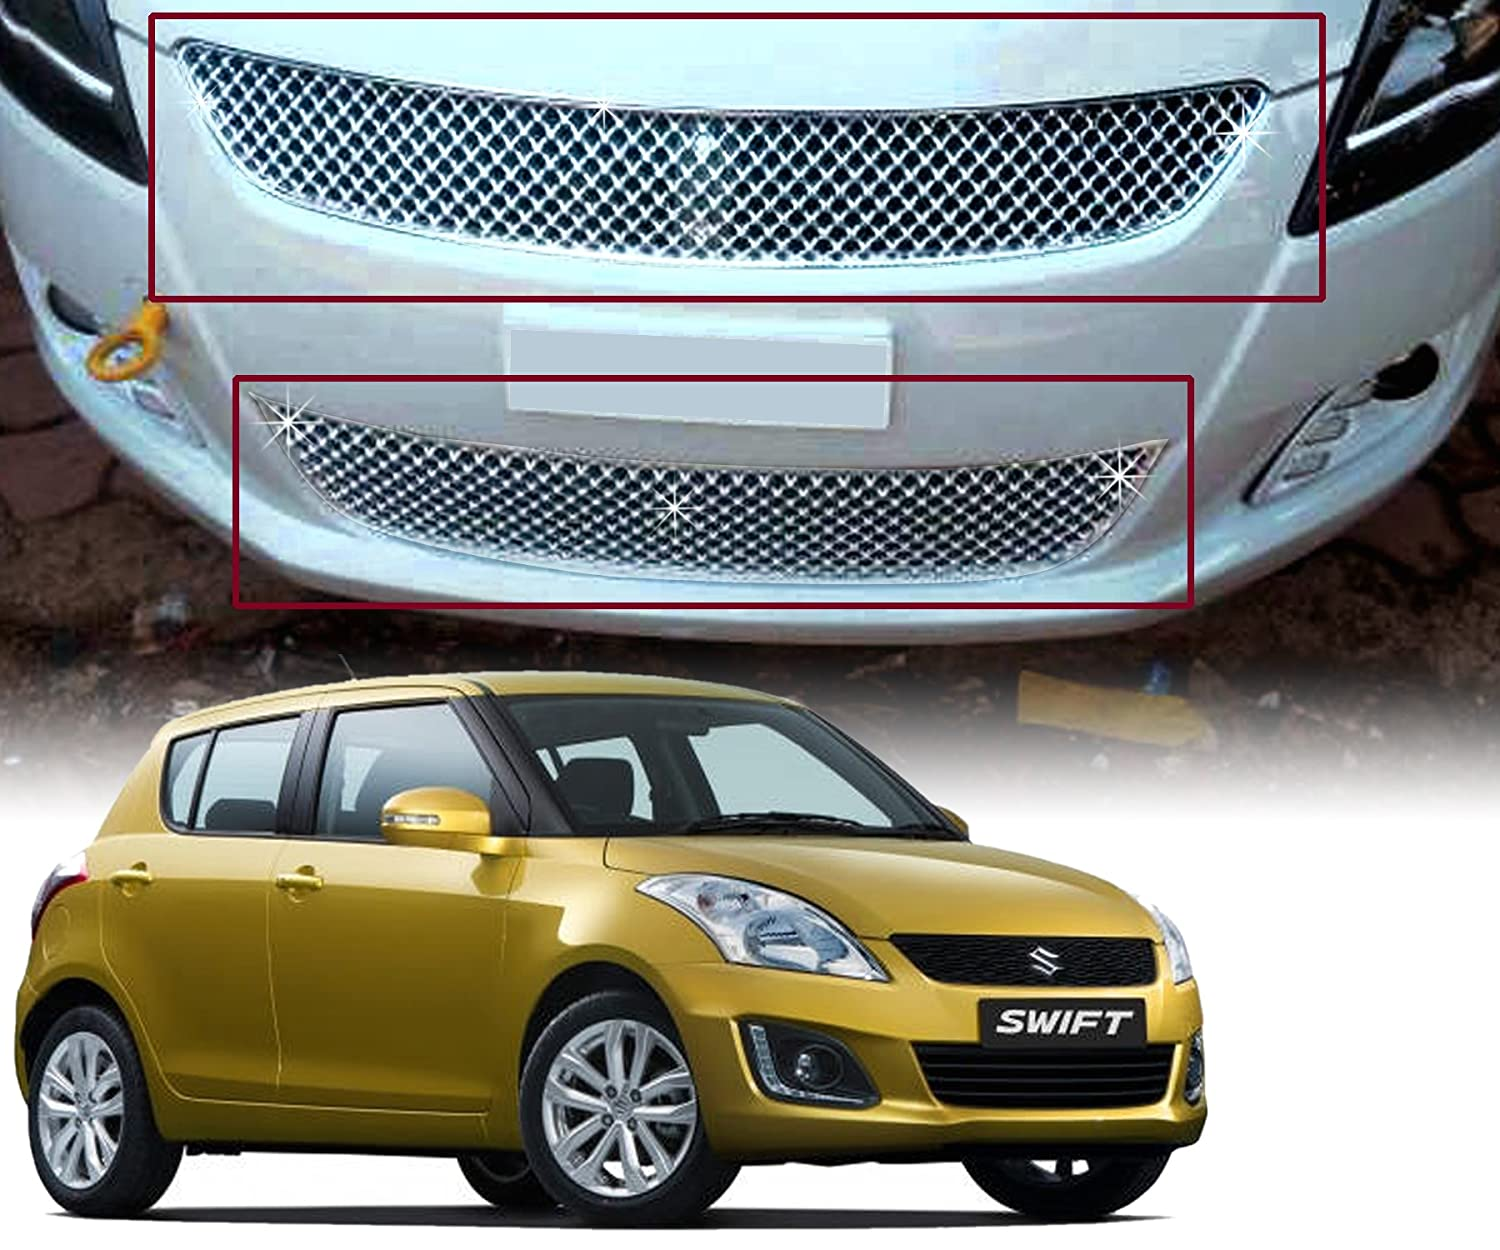 Auto pearl chrome plated front grill for maruti suzuki swift 2014 model with s logo amazon in car motorbike